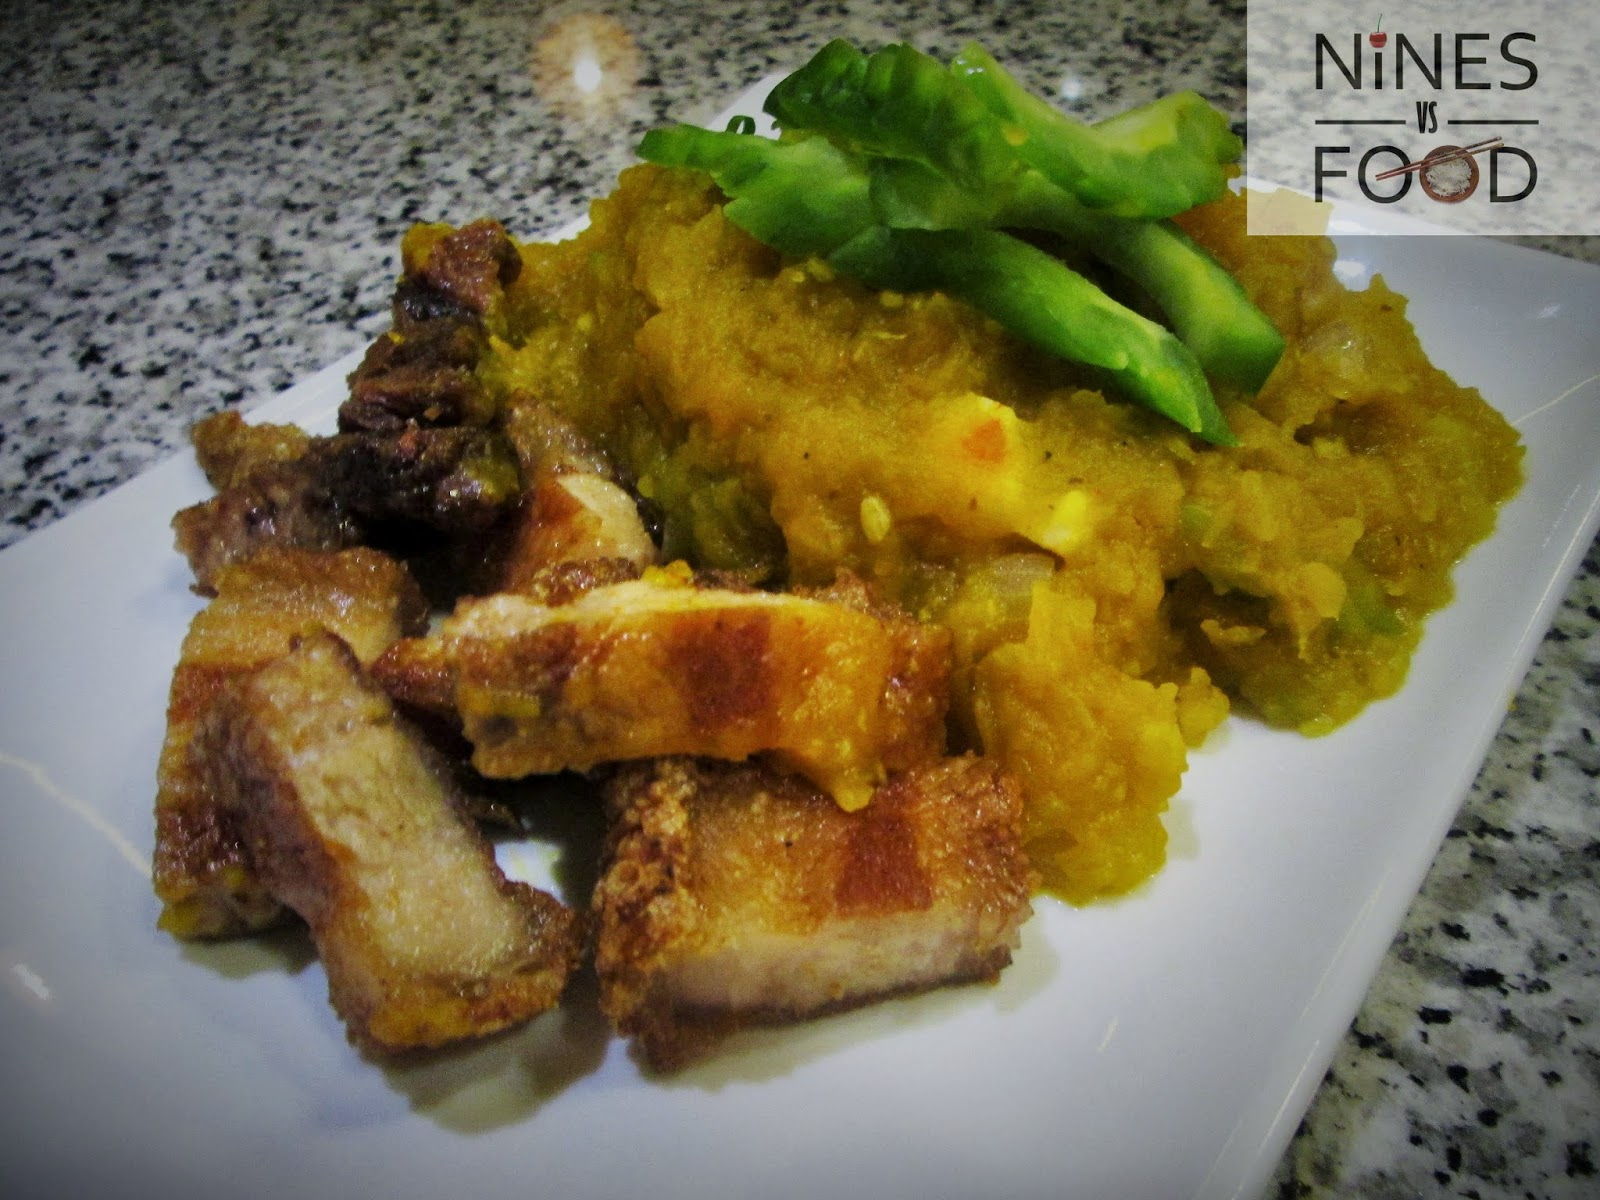 Nines vs. Food - Grilla Filipino Cuisine Makati-11.jpg